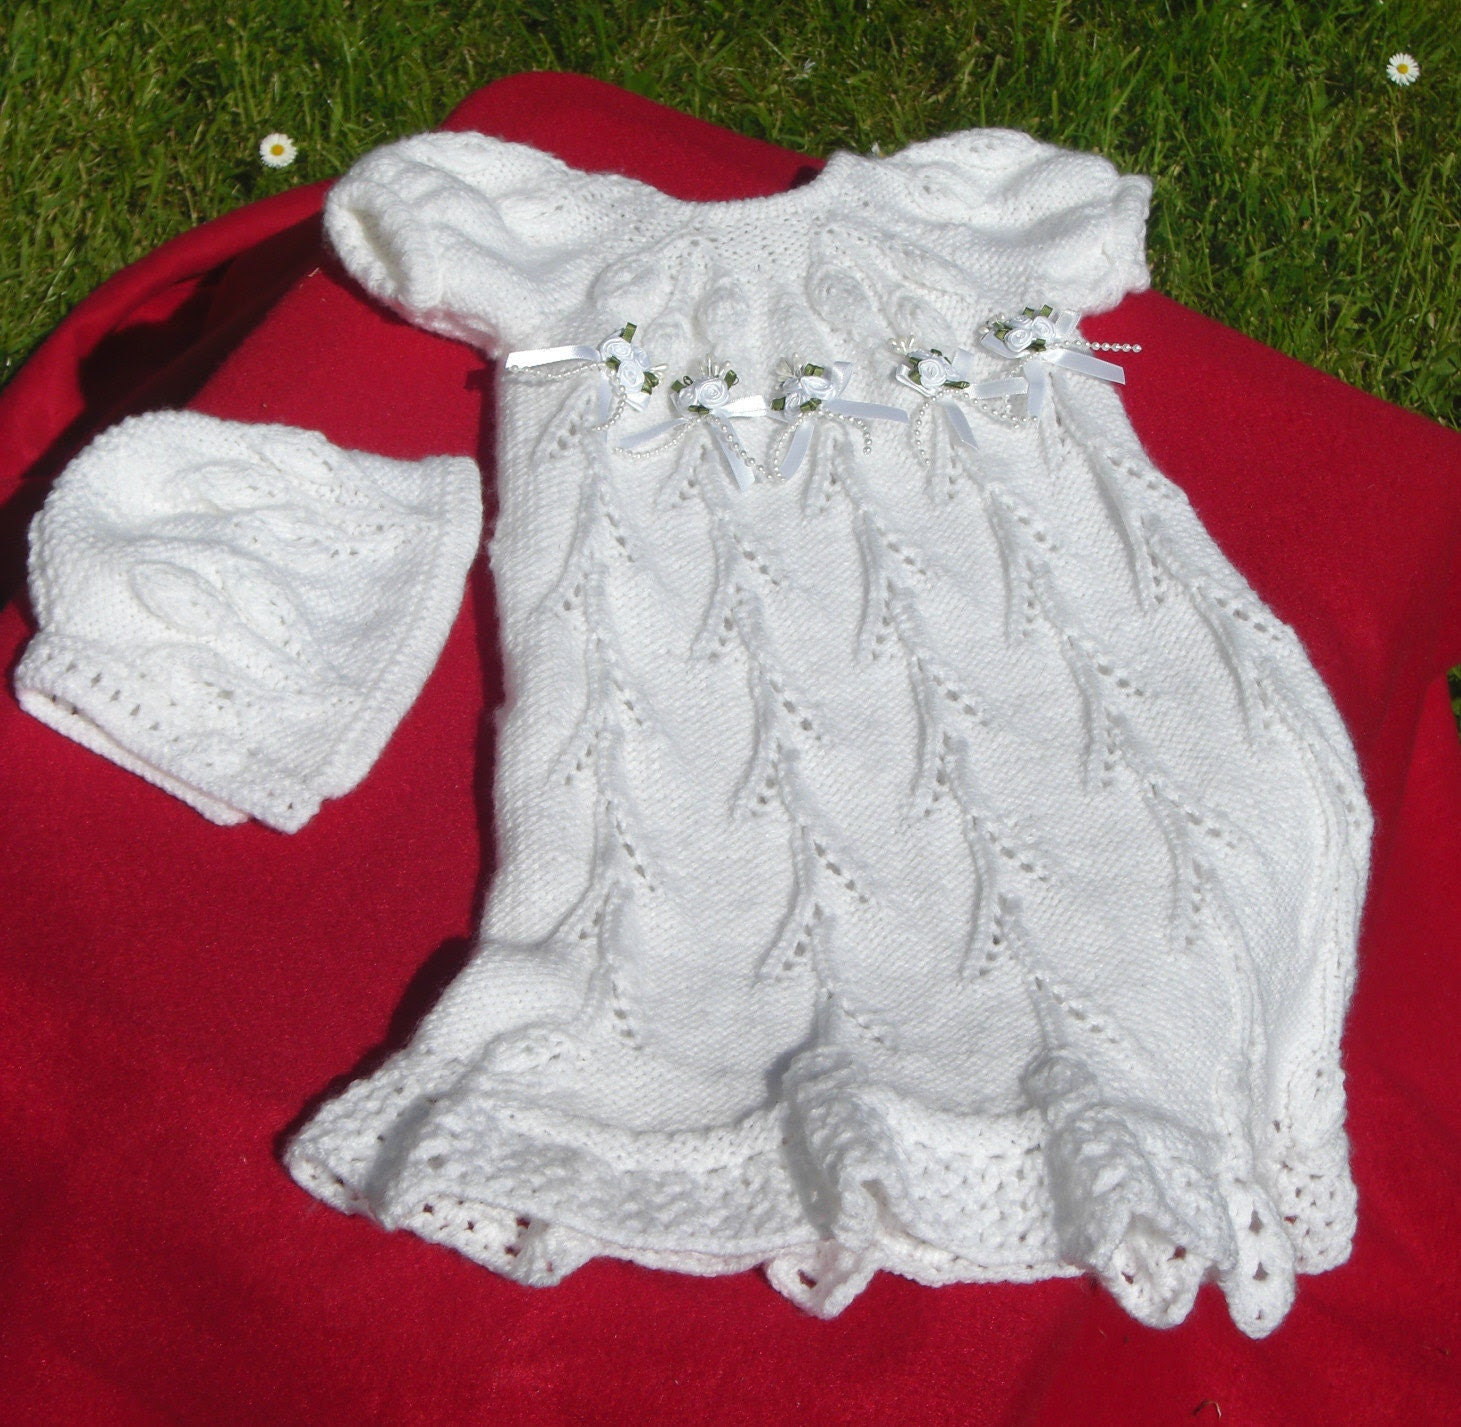 Hand Knitted  Christening Gown  - Floral Trellis Pattern. ( Future Heirloom).version 1.